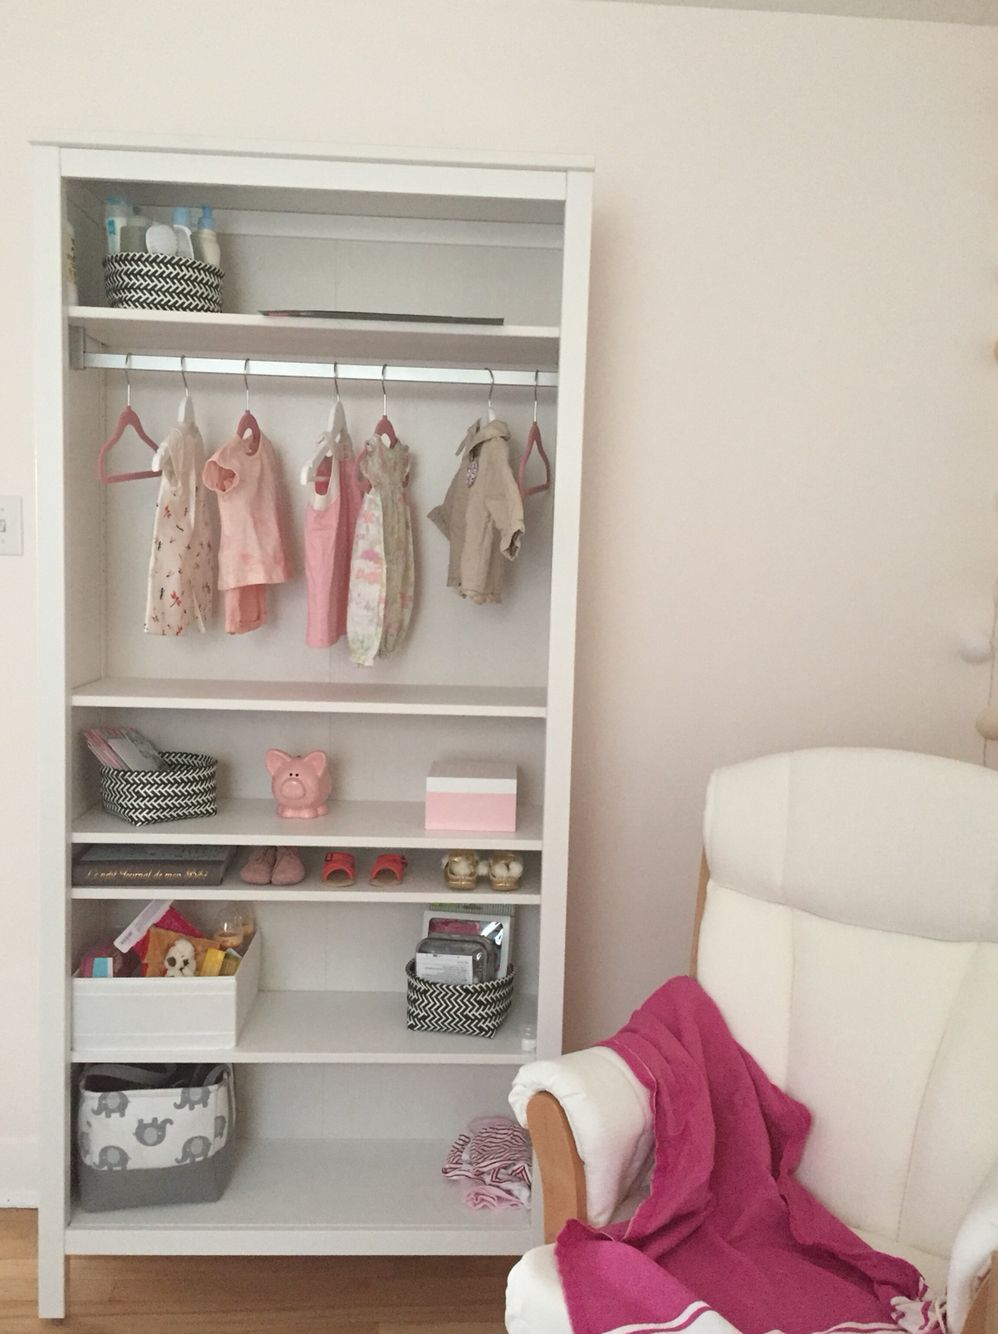 reputable site a1f5a 83702 Ikea hack - HEMNES bookshelf as a baby wardrobe | Chinta ...